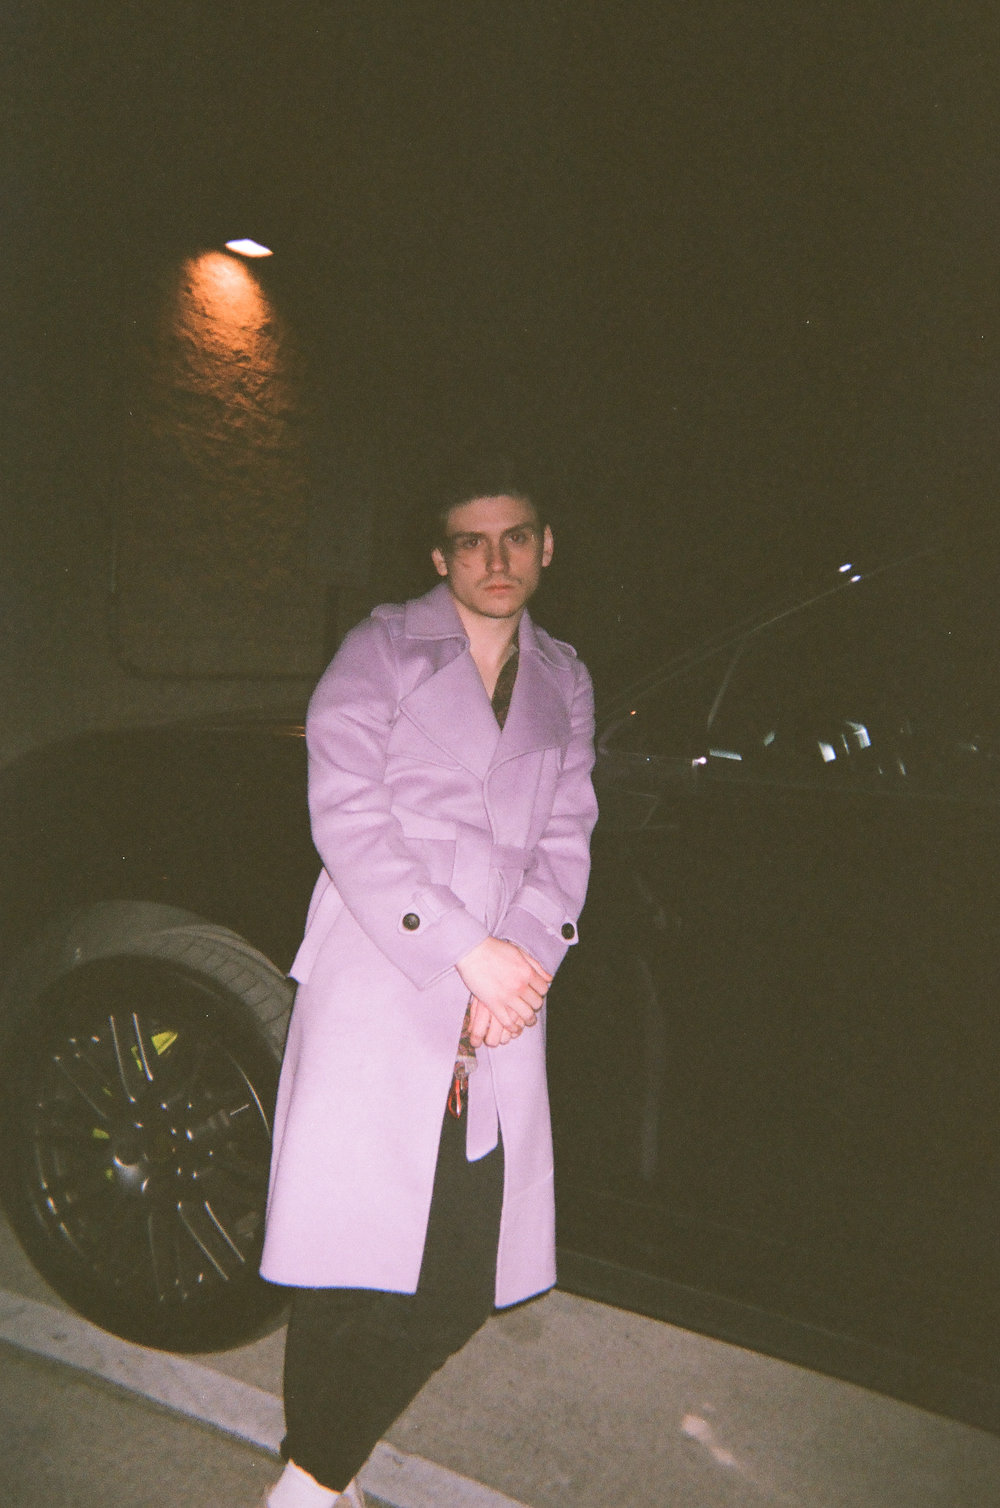 Our keyboardist Jack sporting a lavender trench coat.